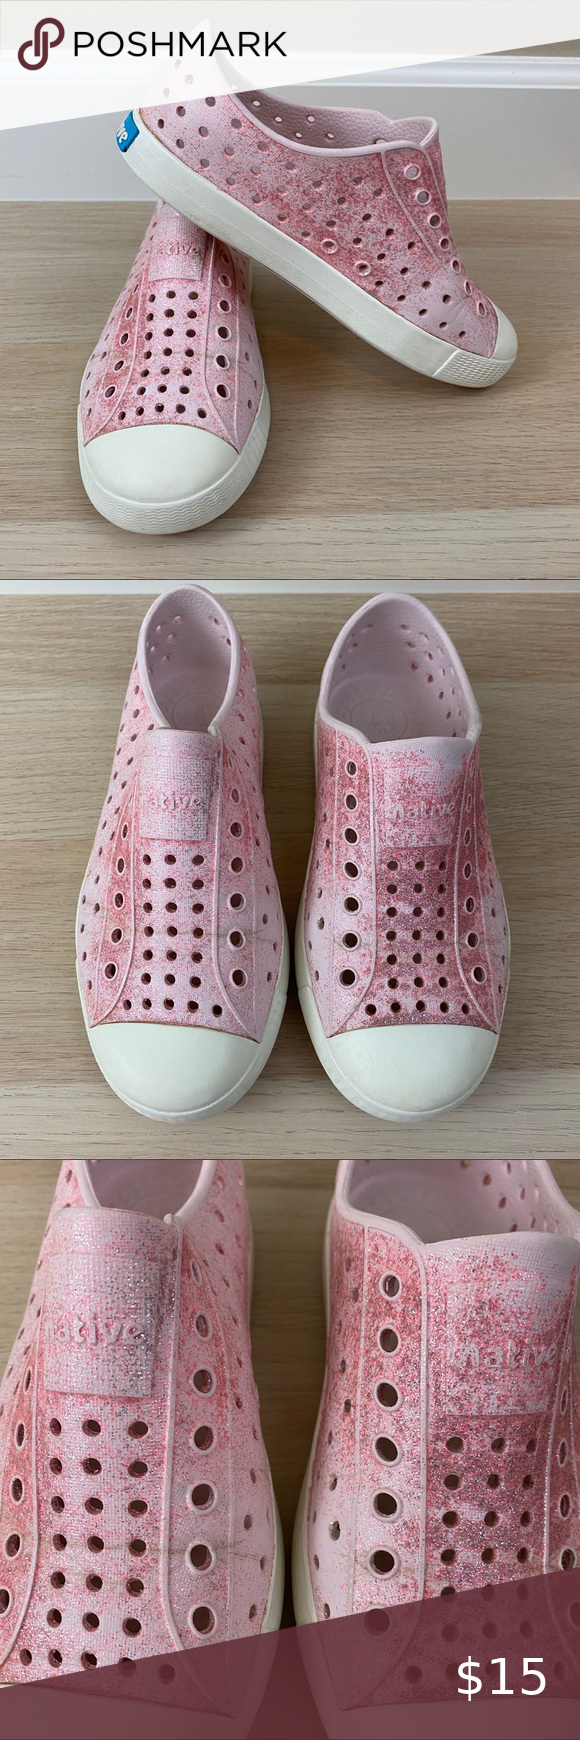 Native Pink Glitter Shoes C13 in 2020